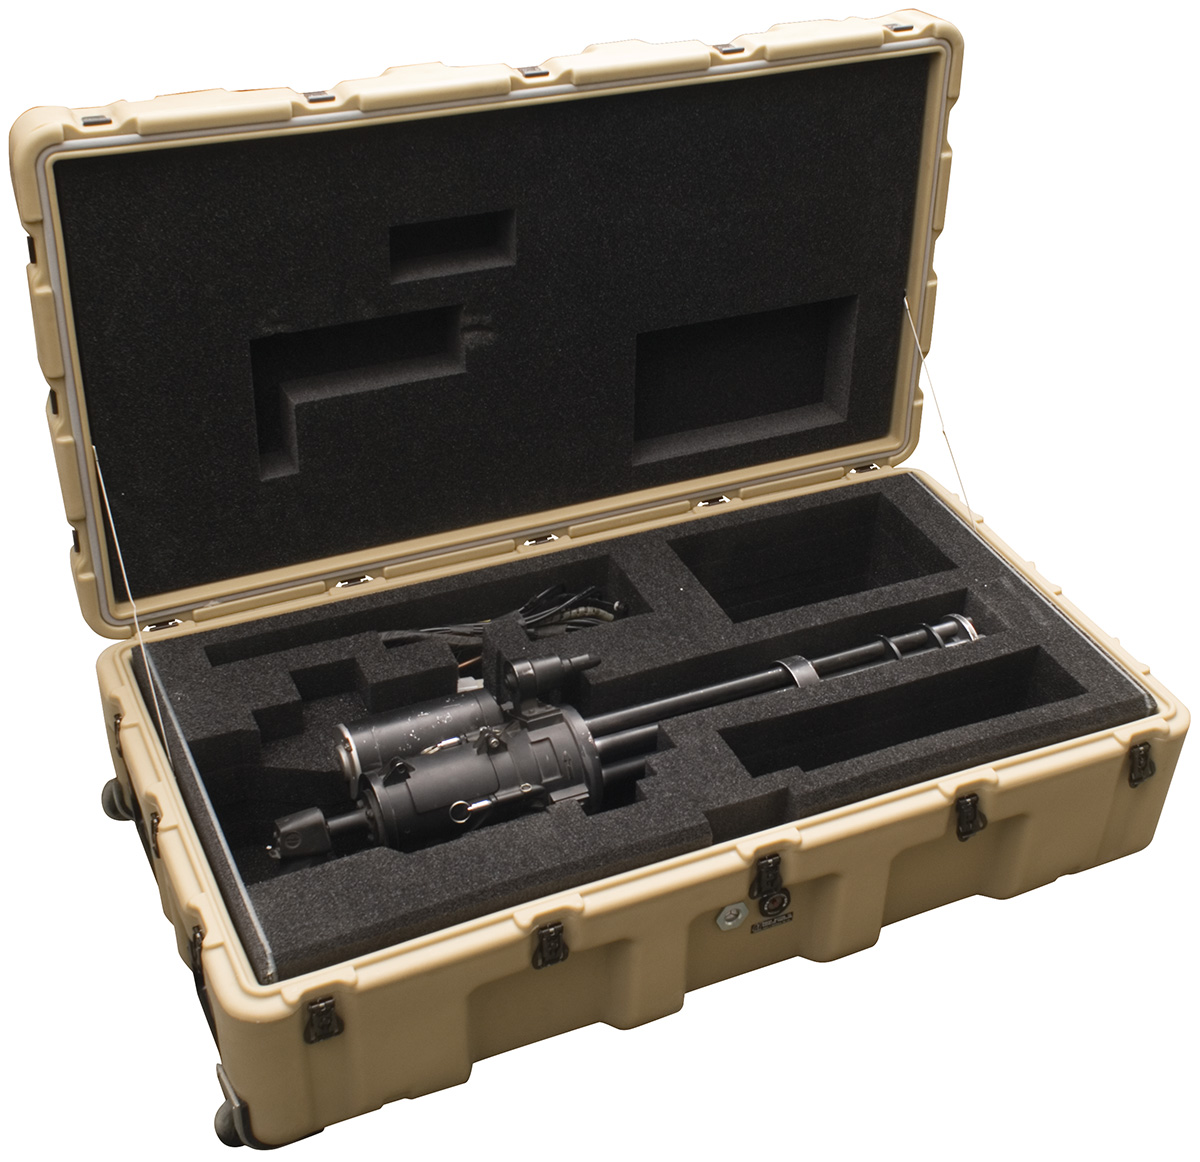 pelican peli products 472 MINIGUN usa military gatling minigun case